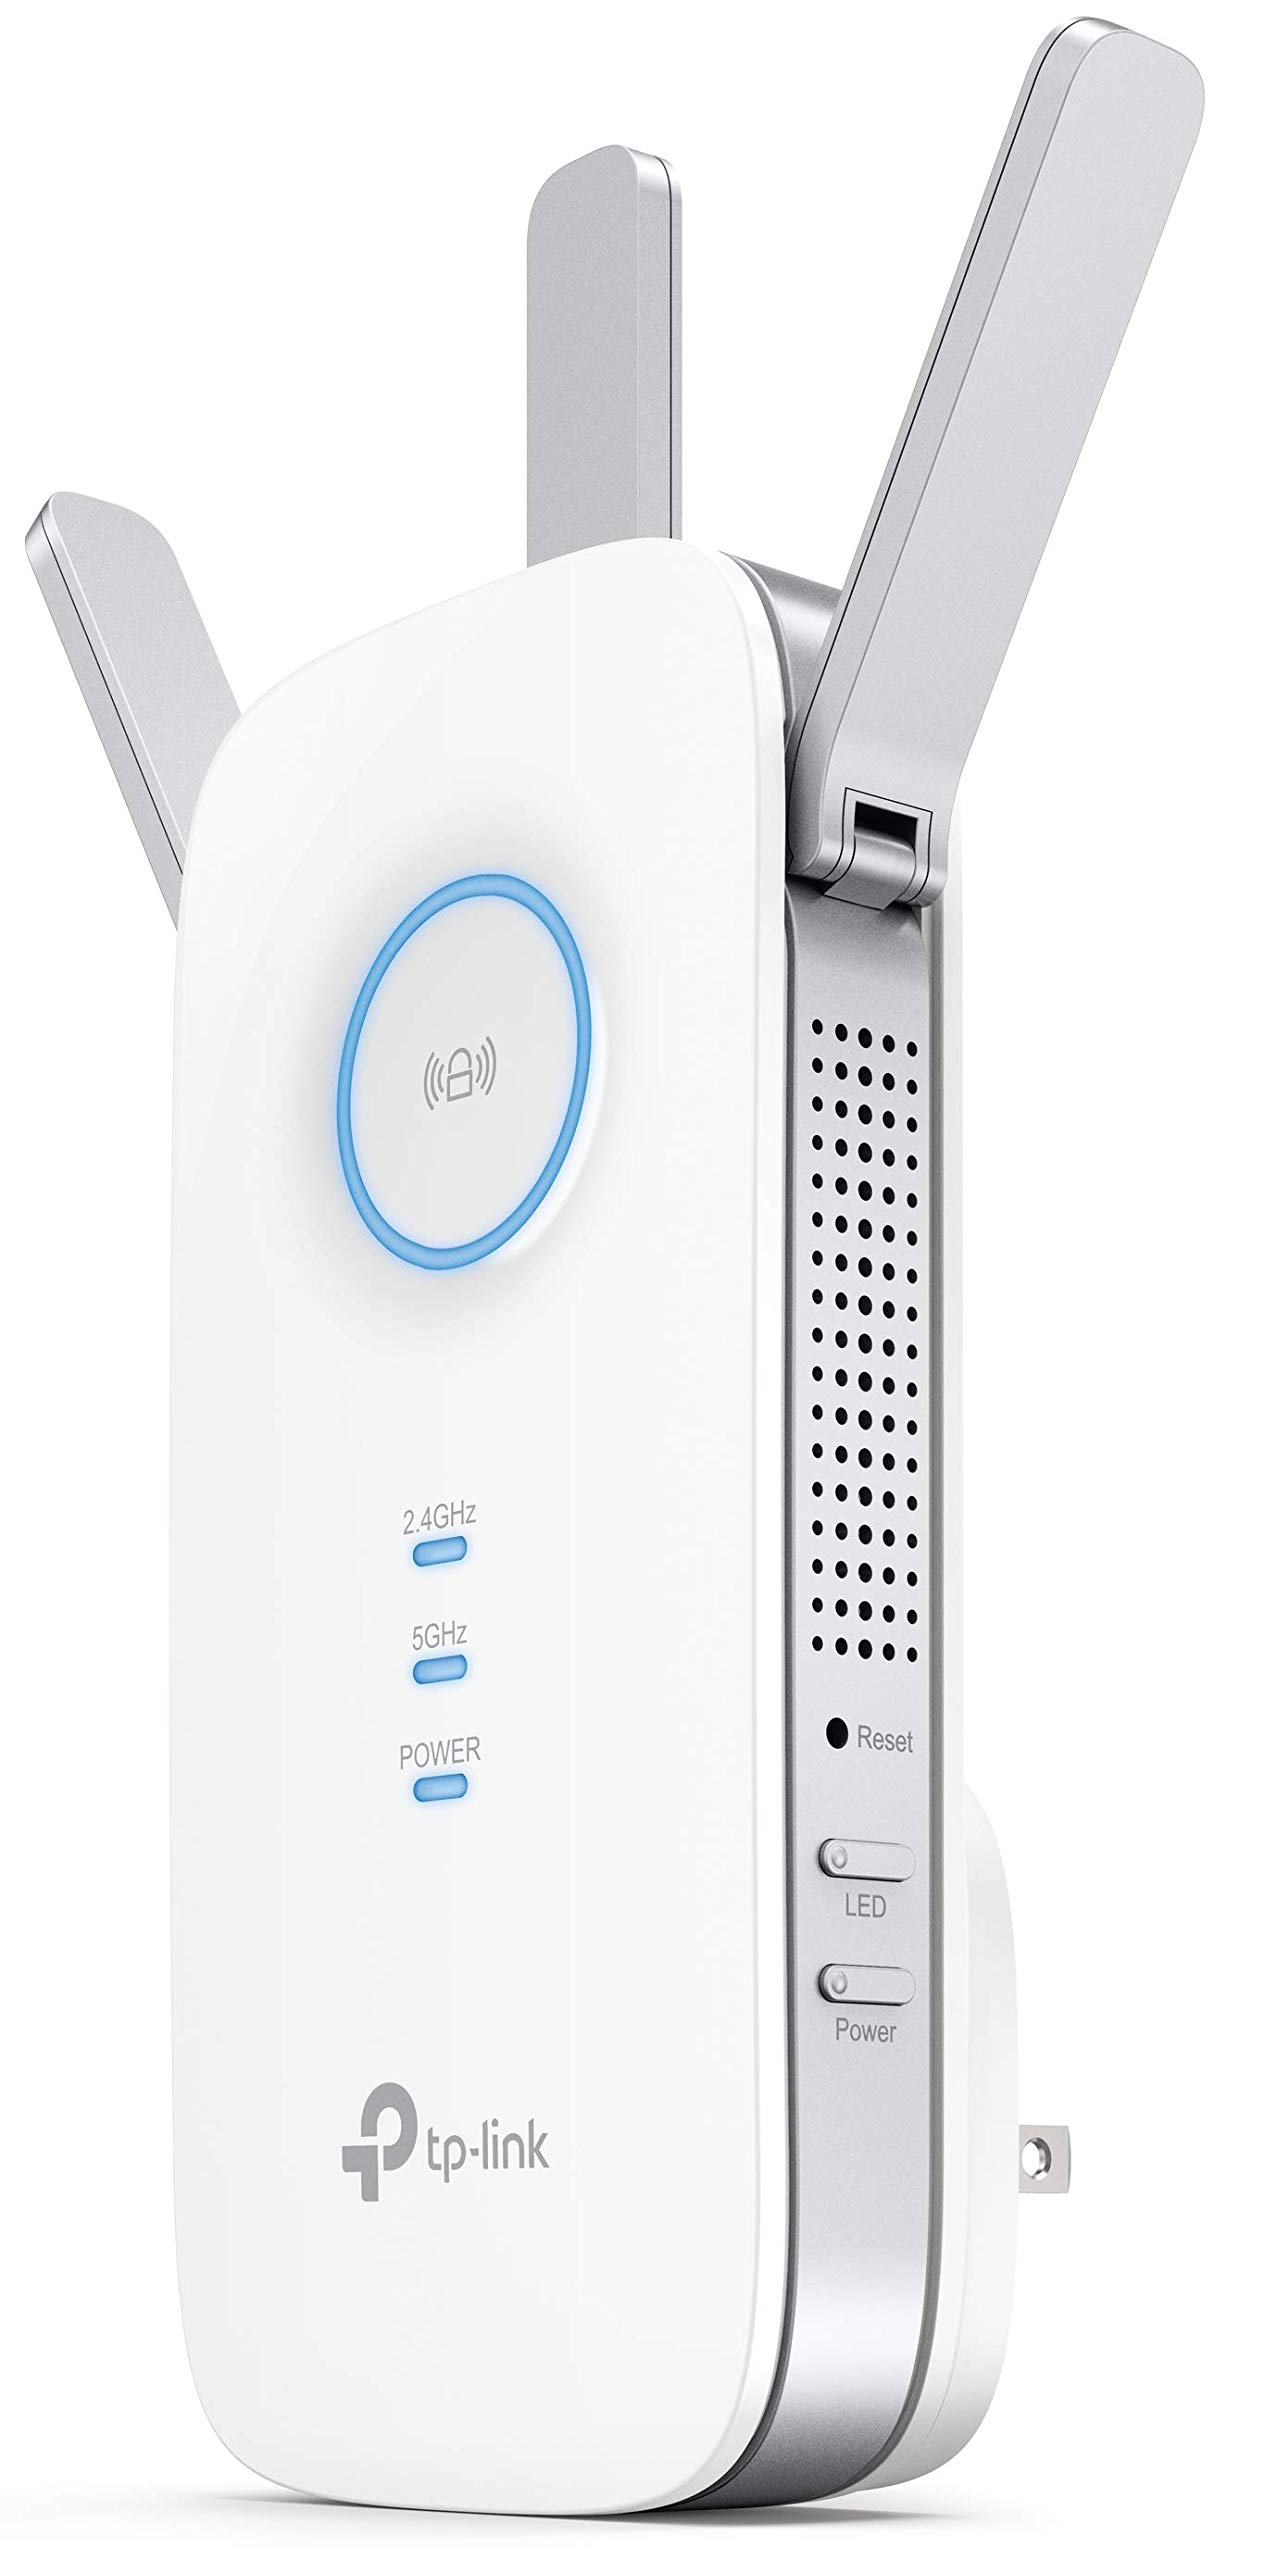 TP-Link | PCMag Editor's Choice - AC1750 Wifi Range Extender | Up to 1750Mbps | Dual Band, Repeater, Internet Booster, Access Point | Extend Wifi Signal to Smart Home & Alexa Devices (RE450) by TP-LINK